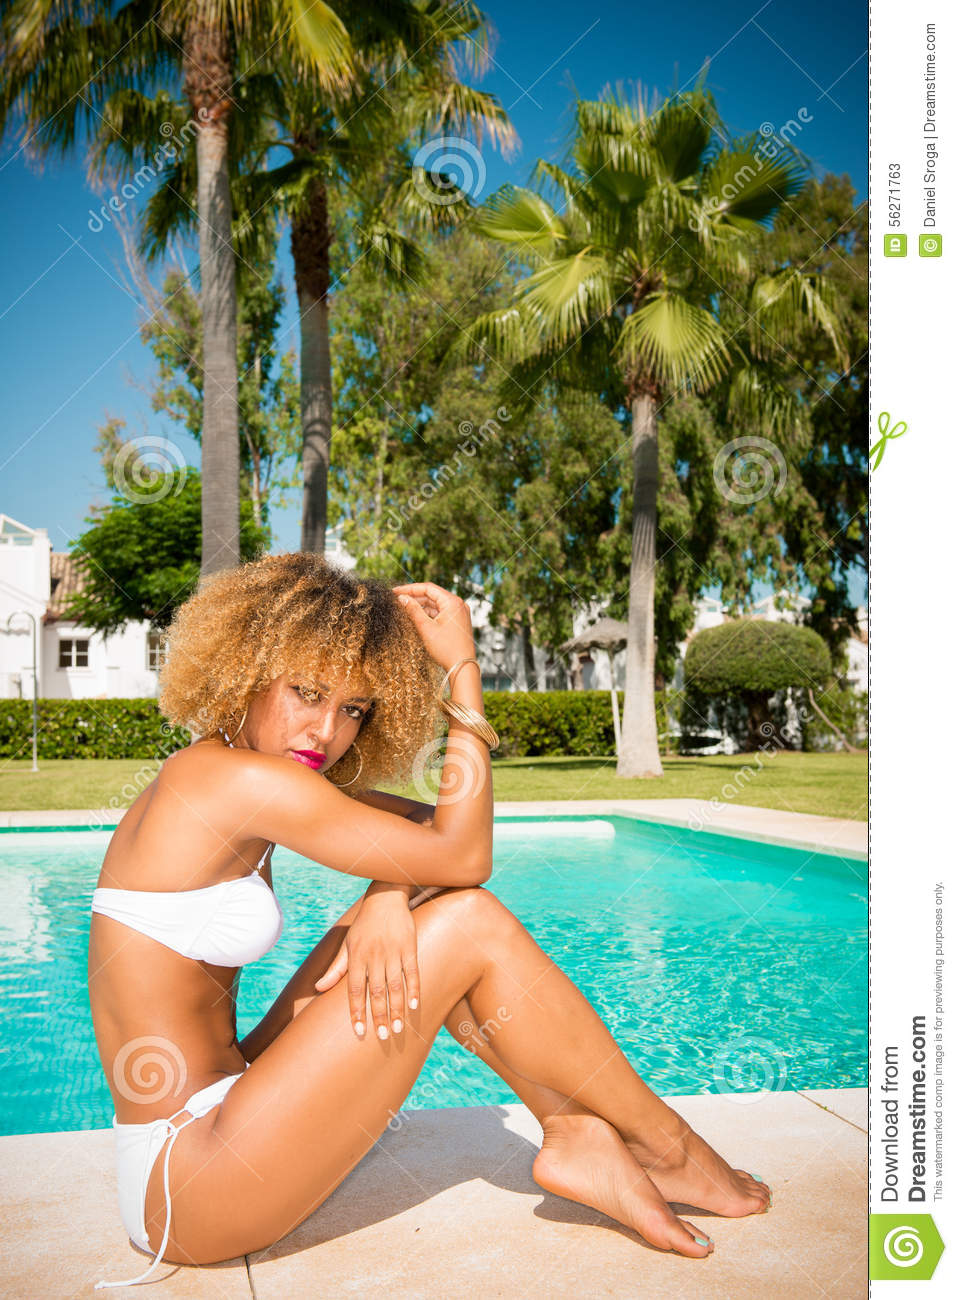 48eebe579d2 Model with Afro Haircut Posing Next to Exotic Swimming Pool She Wearing  White Skimpy Bikini